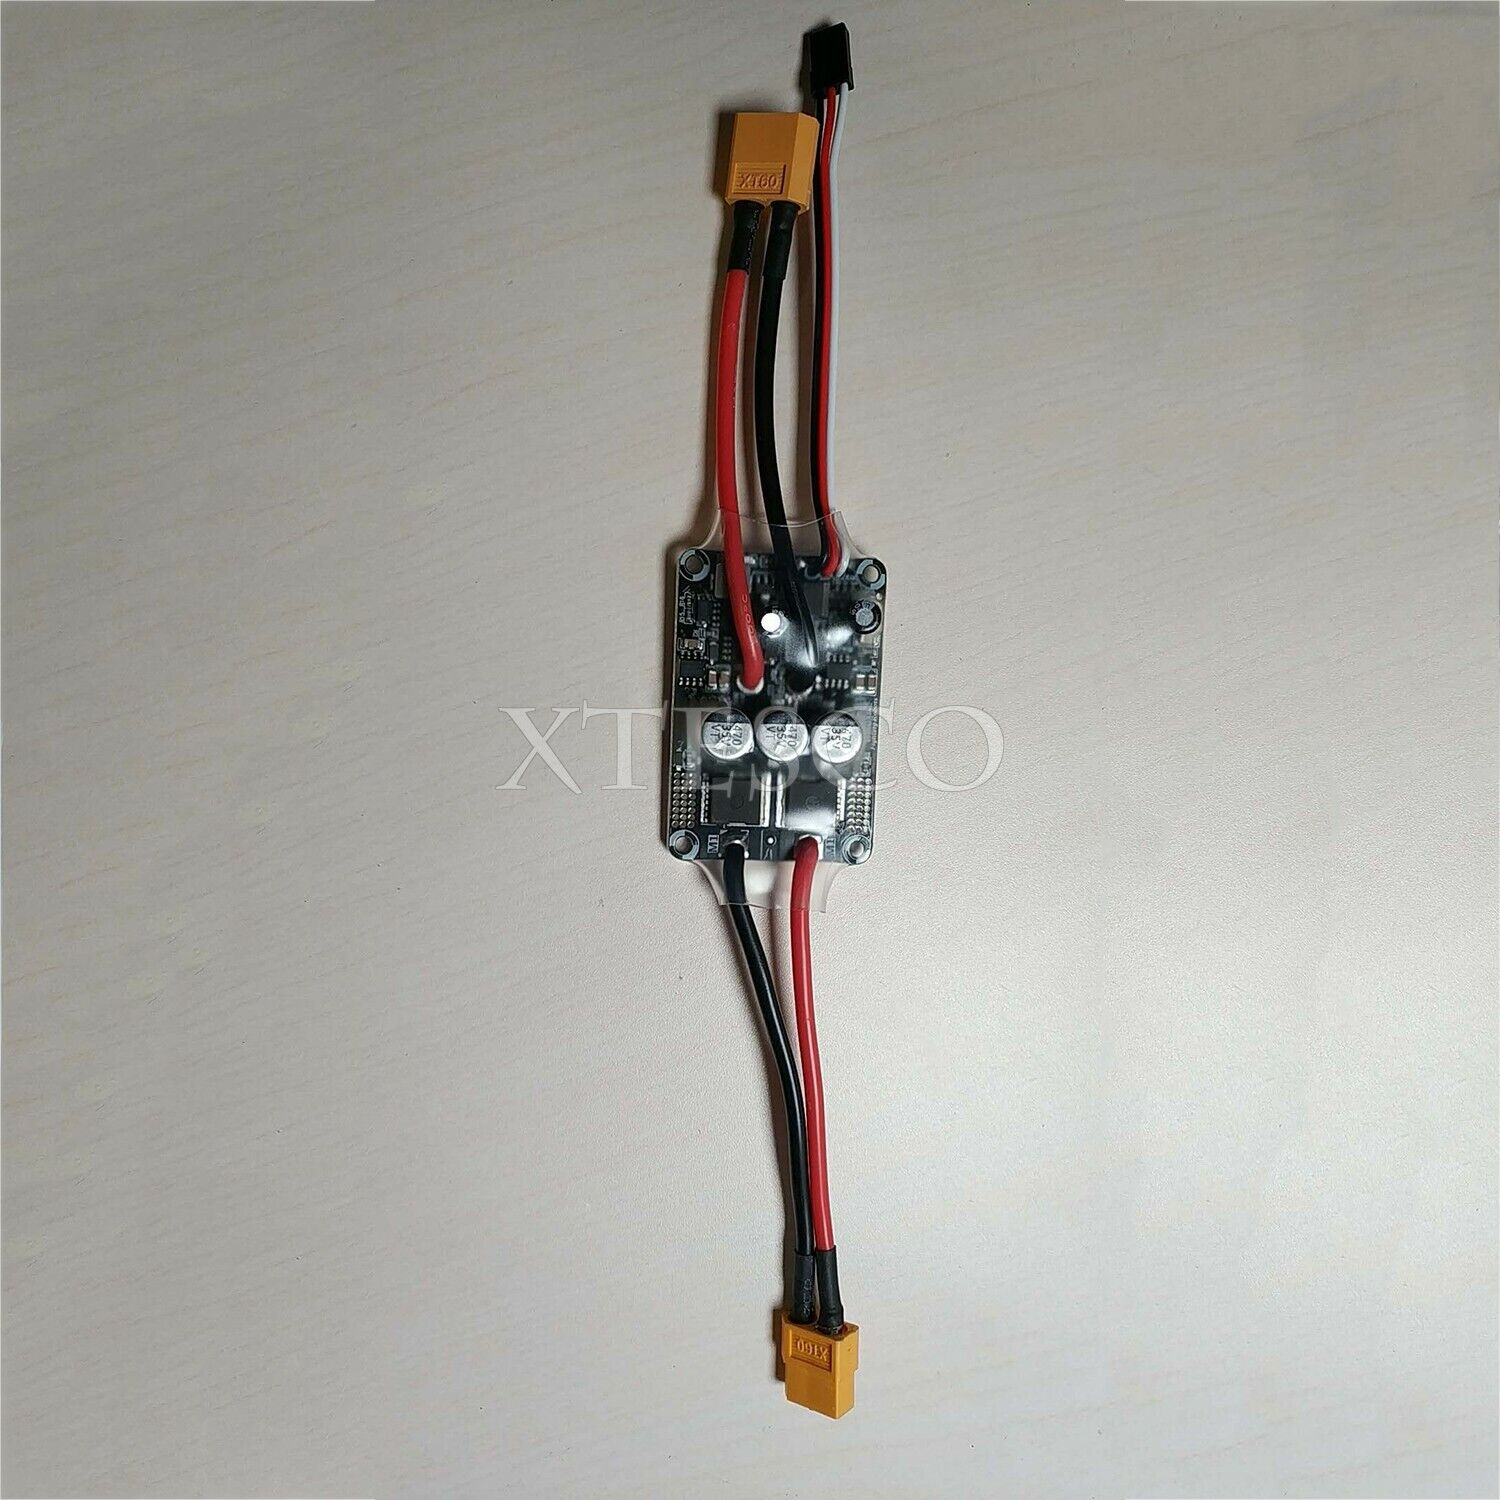 7v-30v 30a RC  ESC for Fighting Robot current Limit apo-a4 nuovo in 2019 SZ ship XS  consegna gratuita